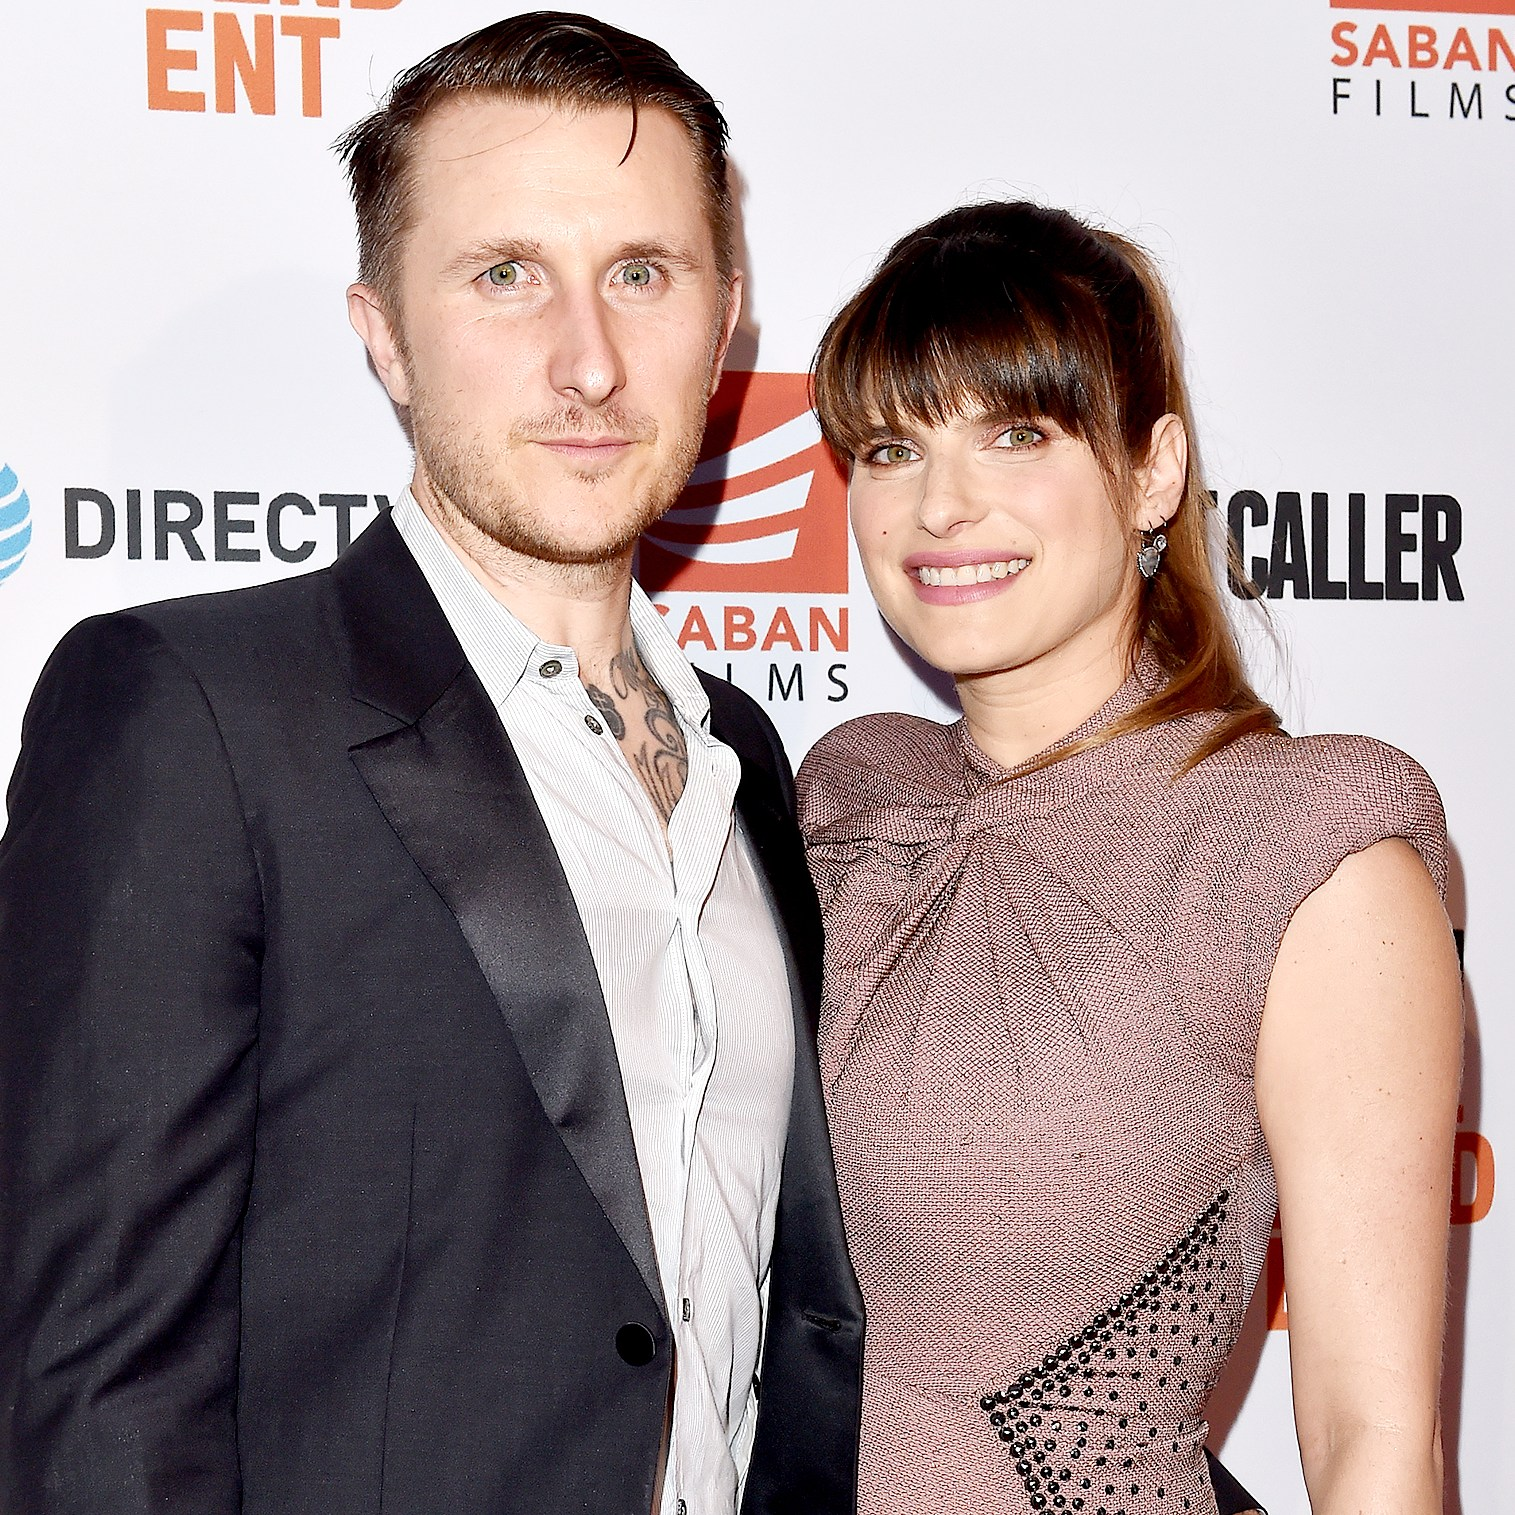 Lake Bell and husband Scott Campbell arrive at the premiere of 'Shot Caller' at The Theatre at Ace Hotel on August 15, 2017 in Los Angeles, California.